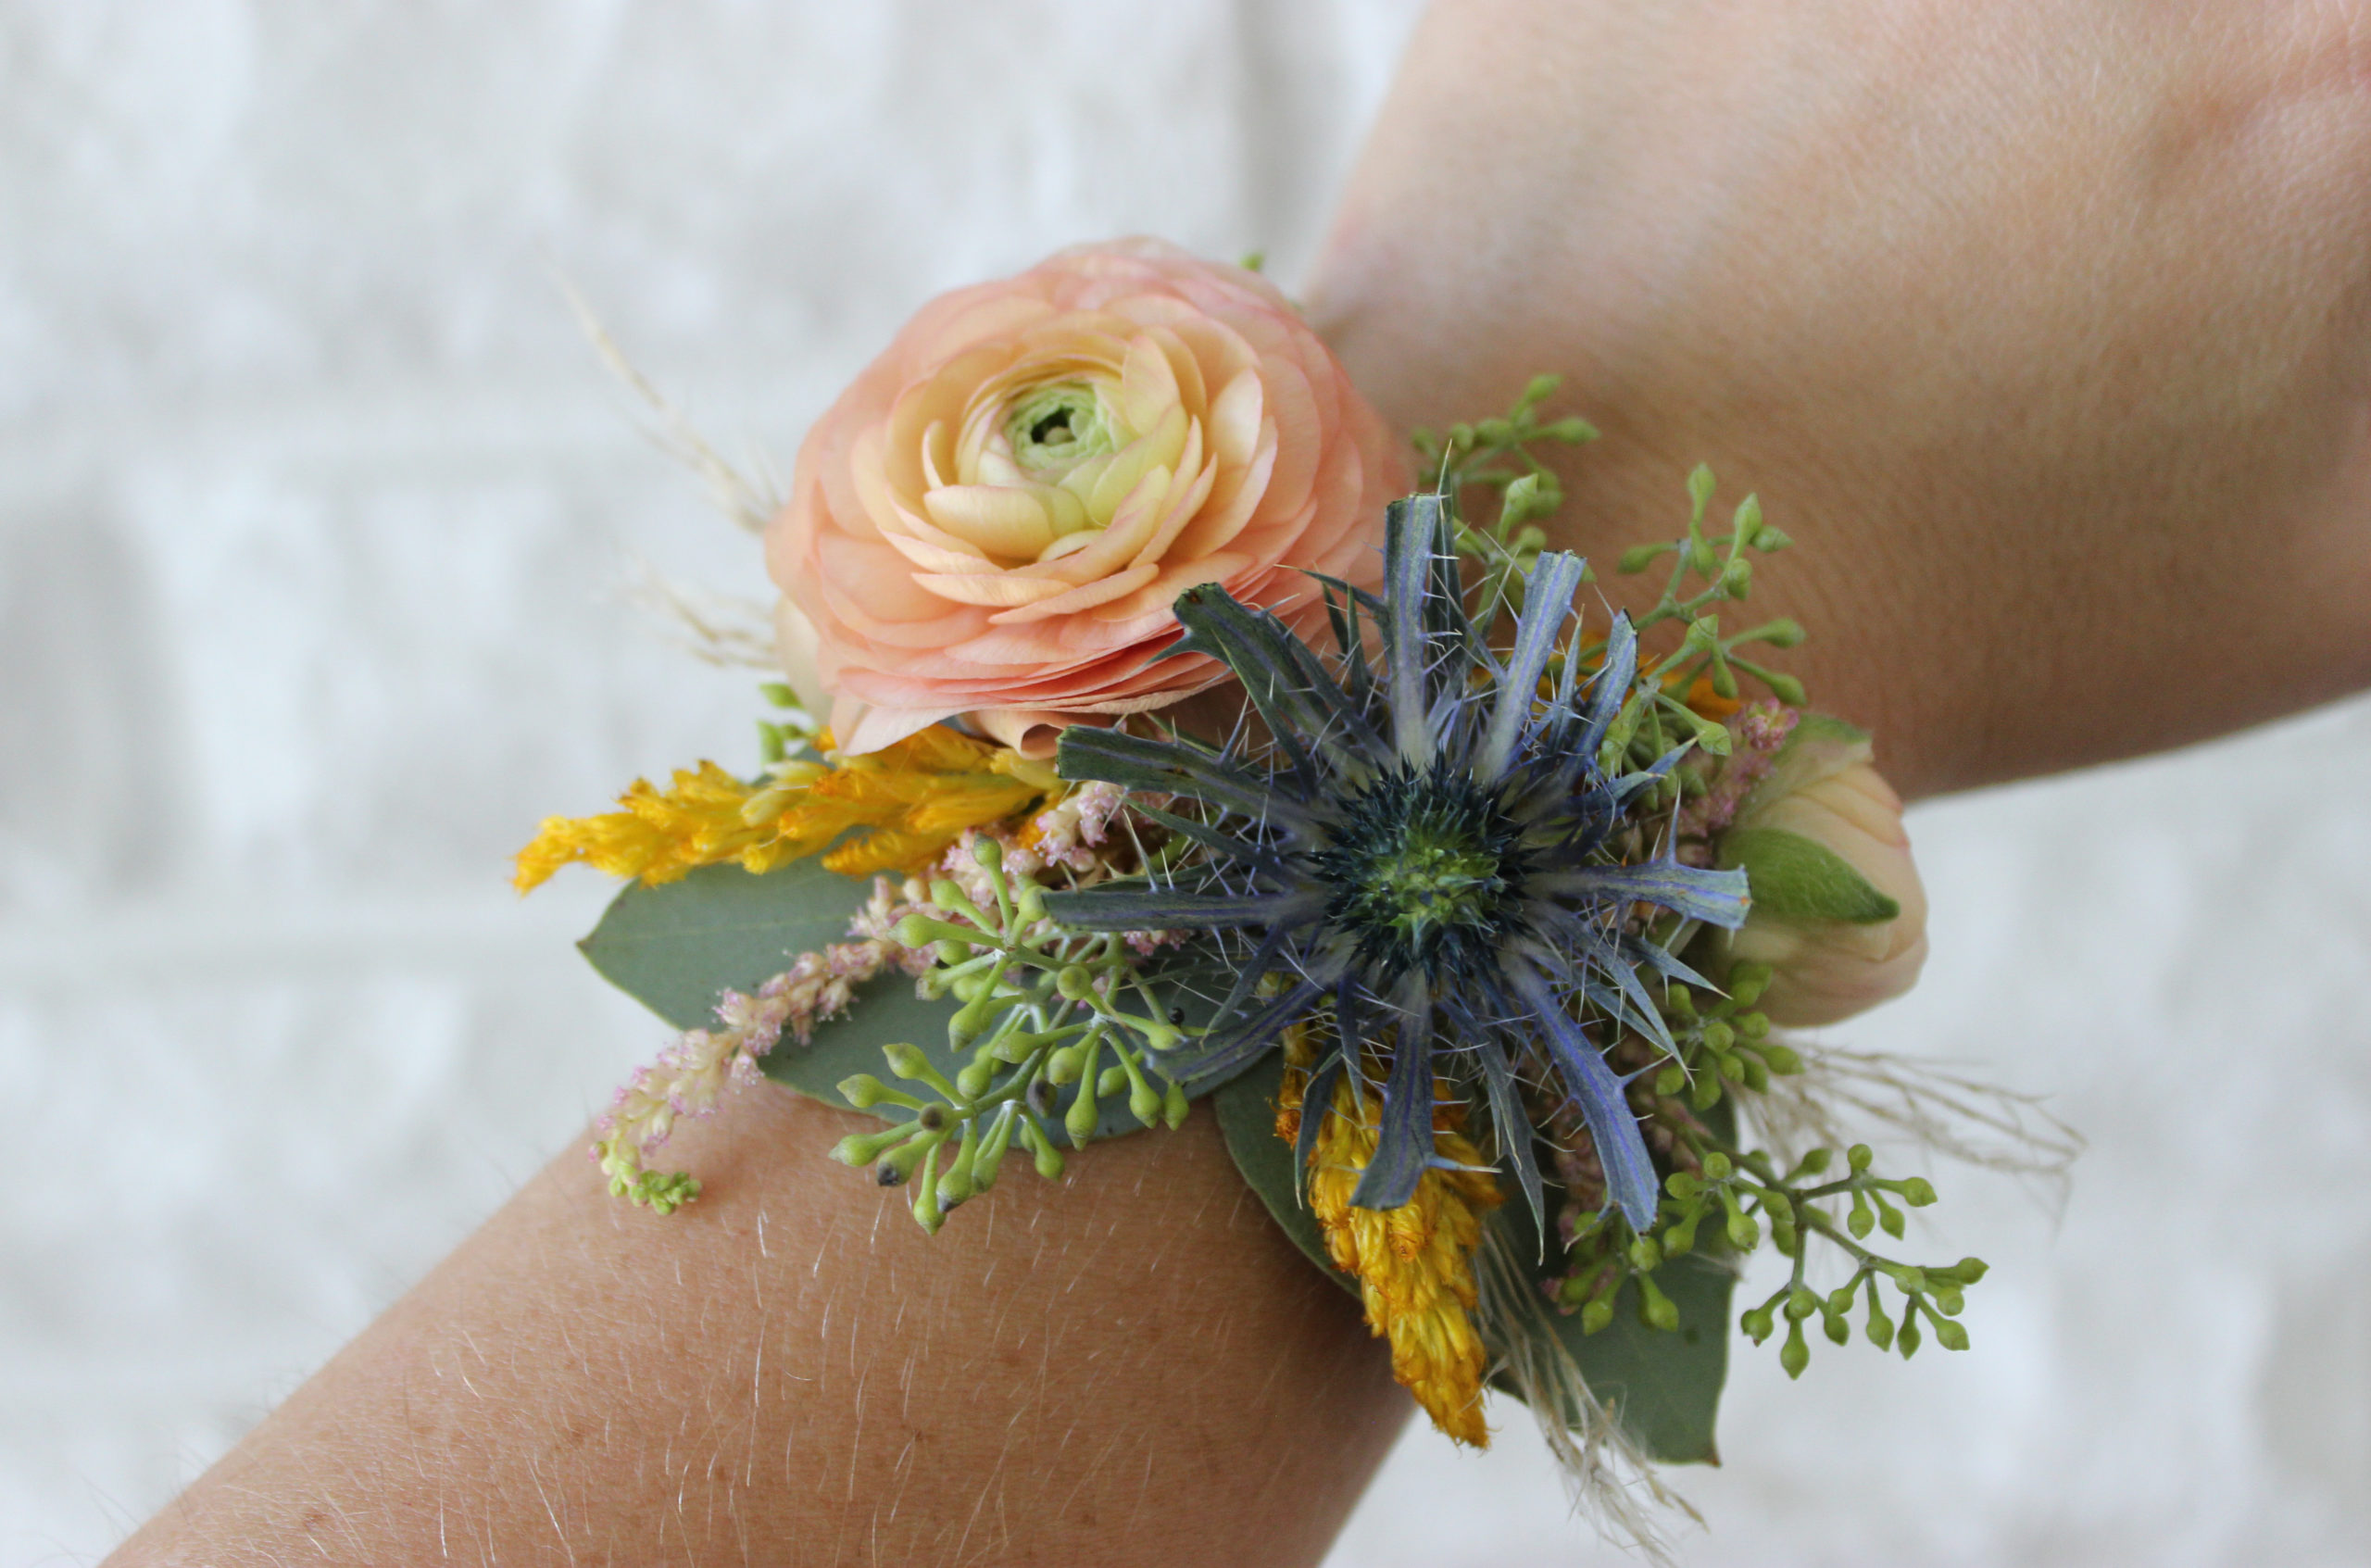 wrist corsage created by an evansville wedding by florist emerald design